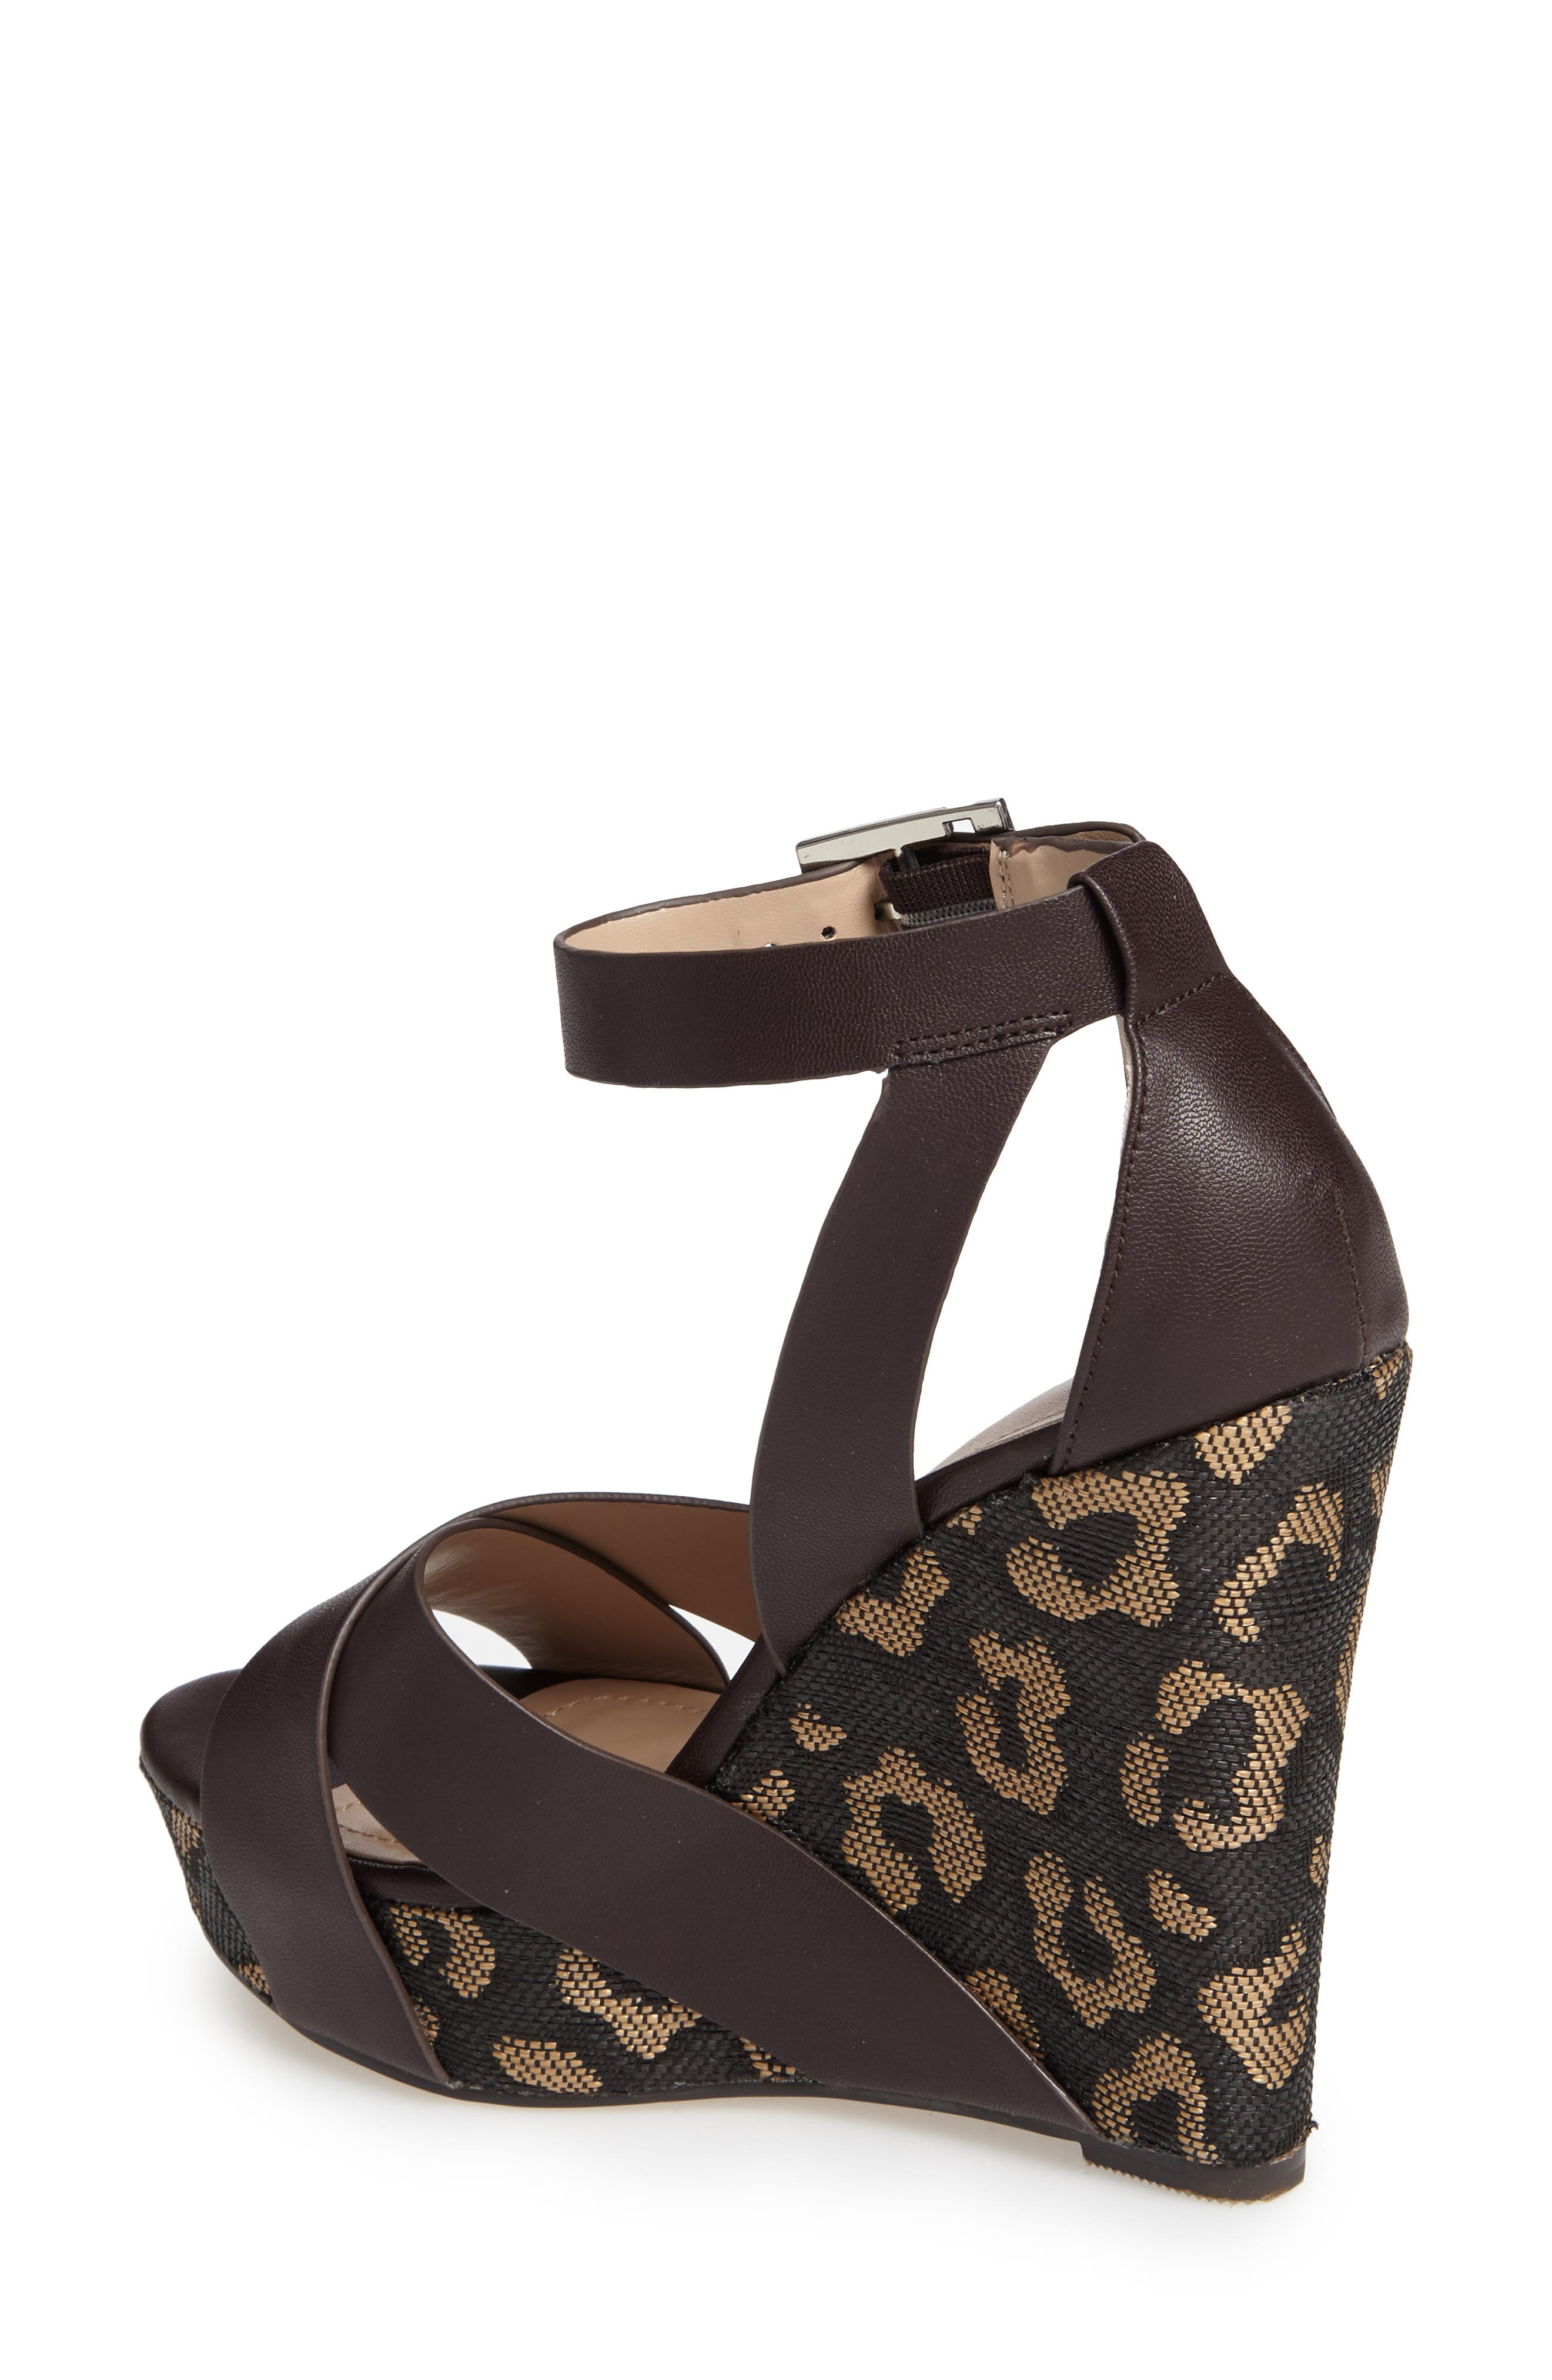 Amsterdam Platform Wedge Sandal,                             Alternate thumbnail 5, color,